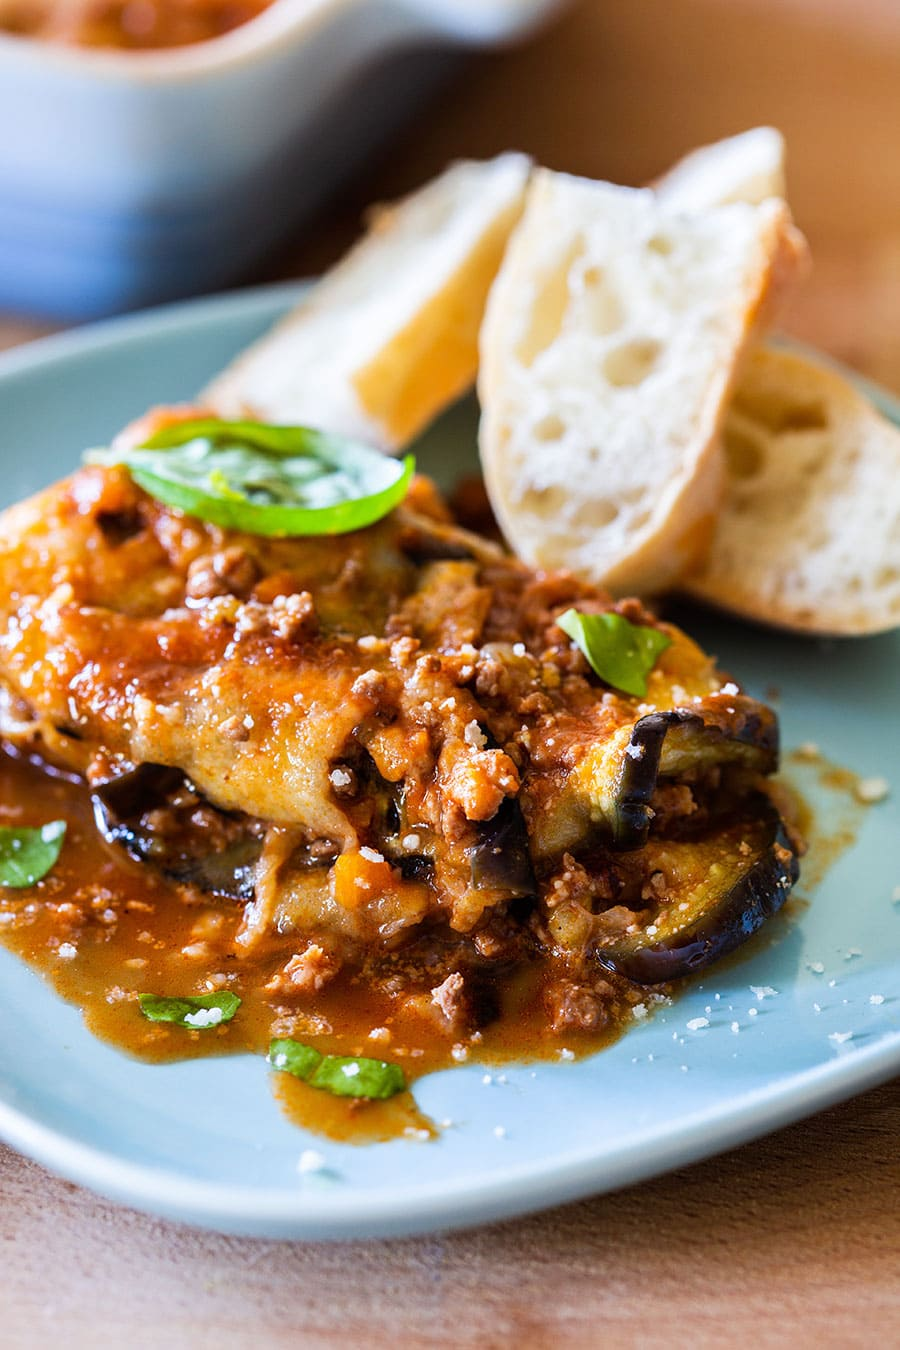 Eggplant lasagna served on a blue plate with some bread slices on the side.